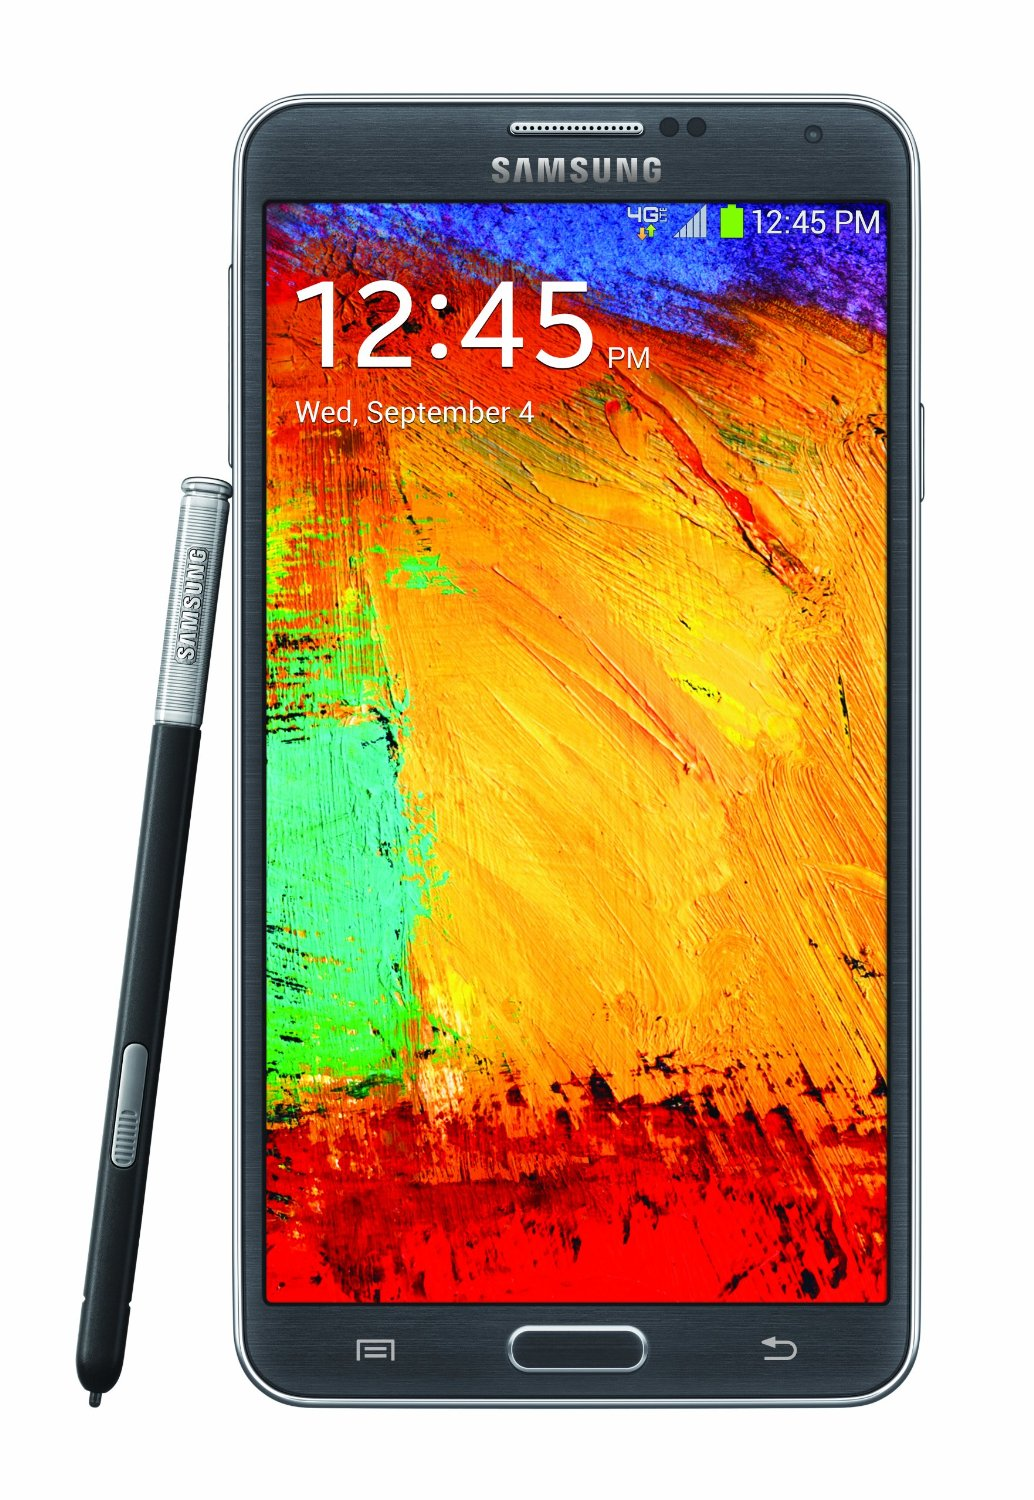 Samsung Galaxy Note 3, Black (Verizon Wireless)